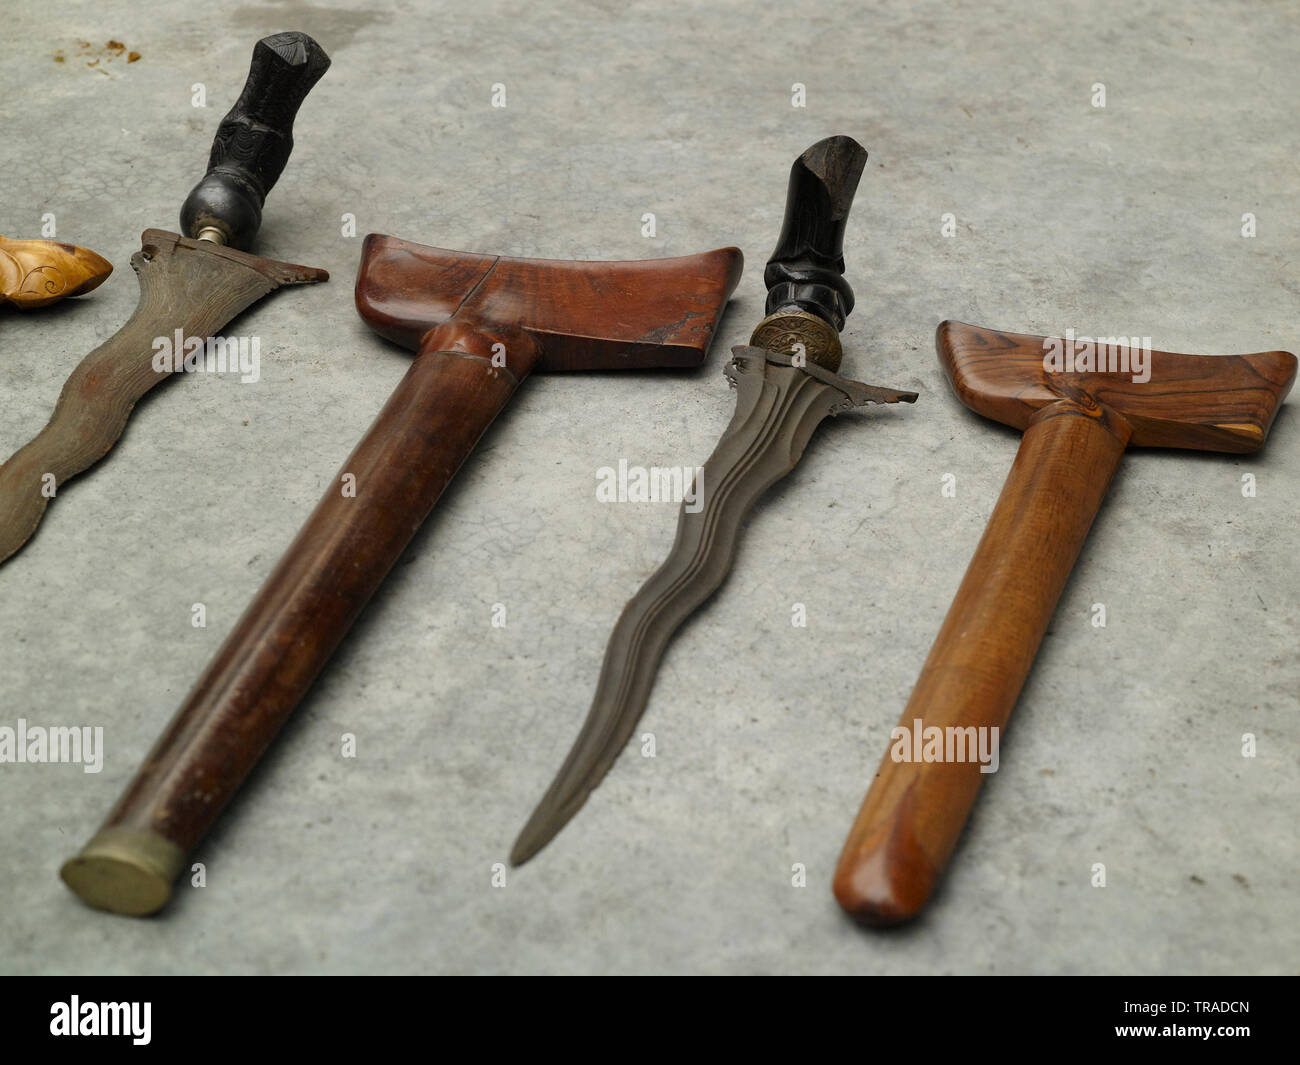 Large collection of Keris blades from Malaysia and Java, a historic weapon used in South East Asia - Stock Image